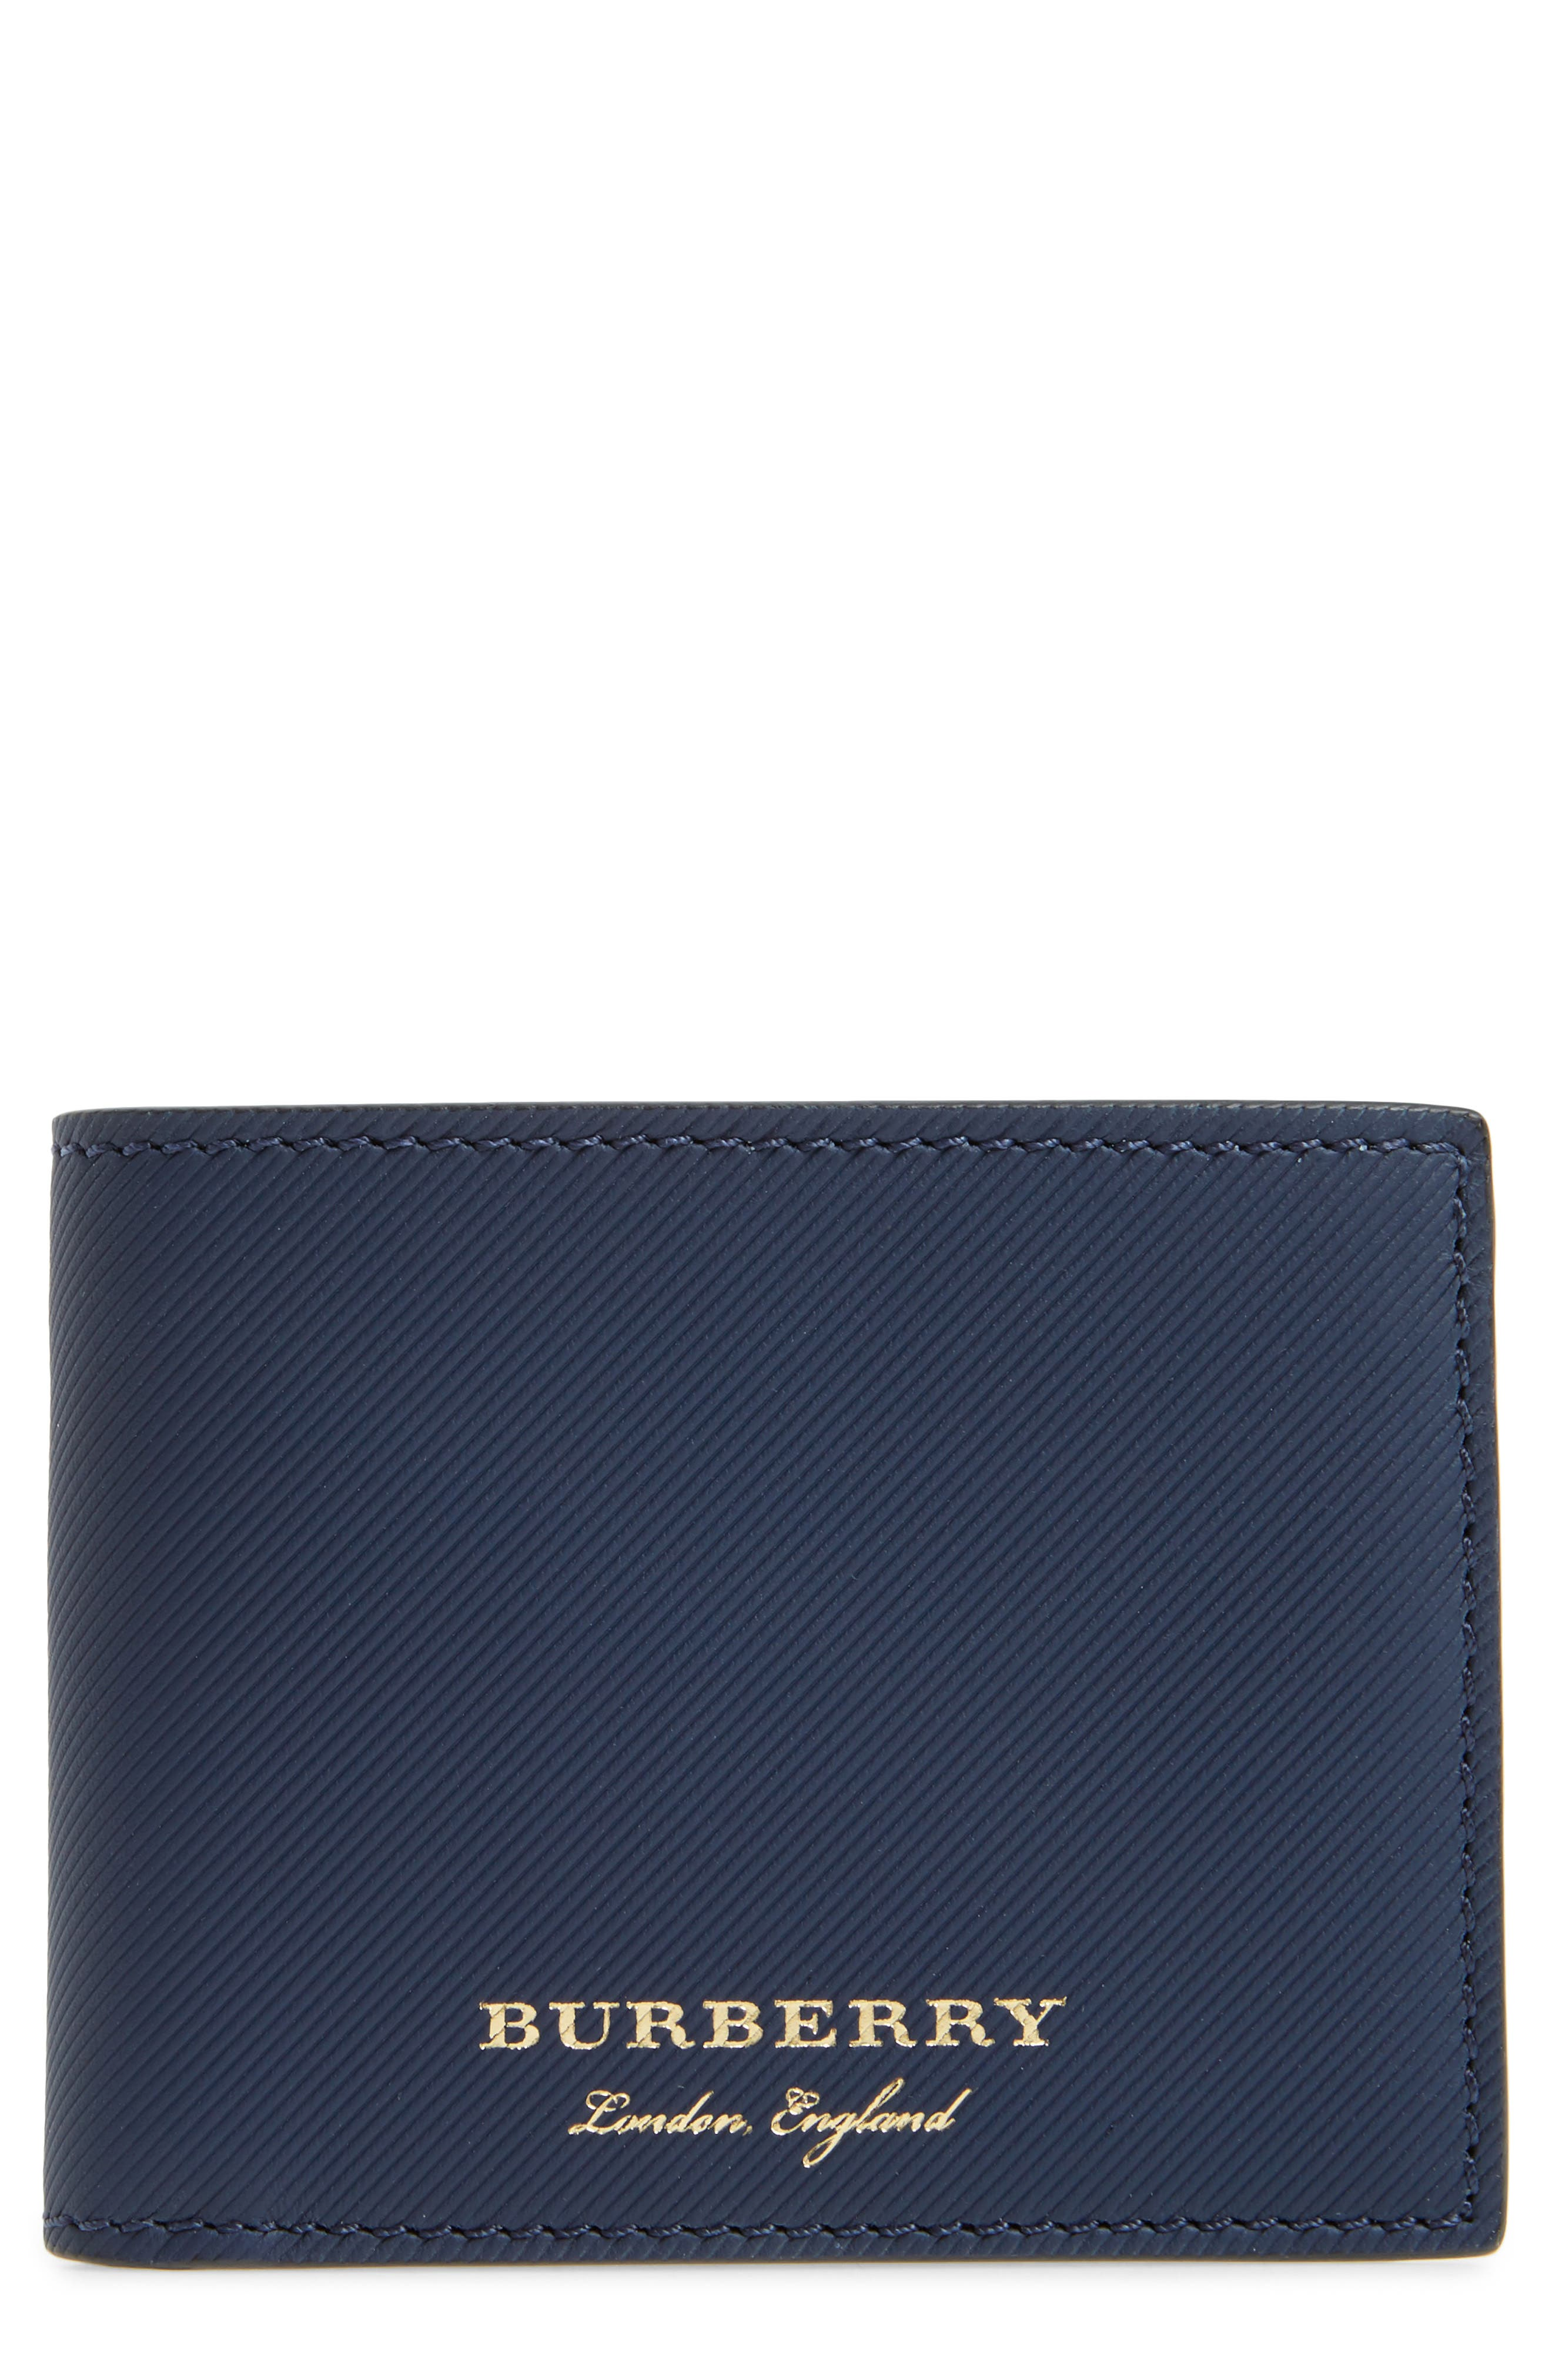 Trench Leather Wallet,                             Main thumbnail 1, color,                             Ink Blue